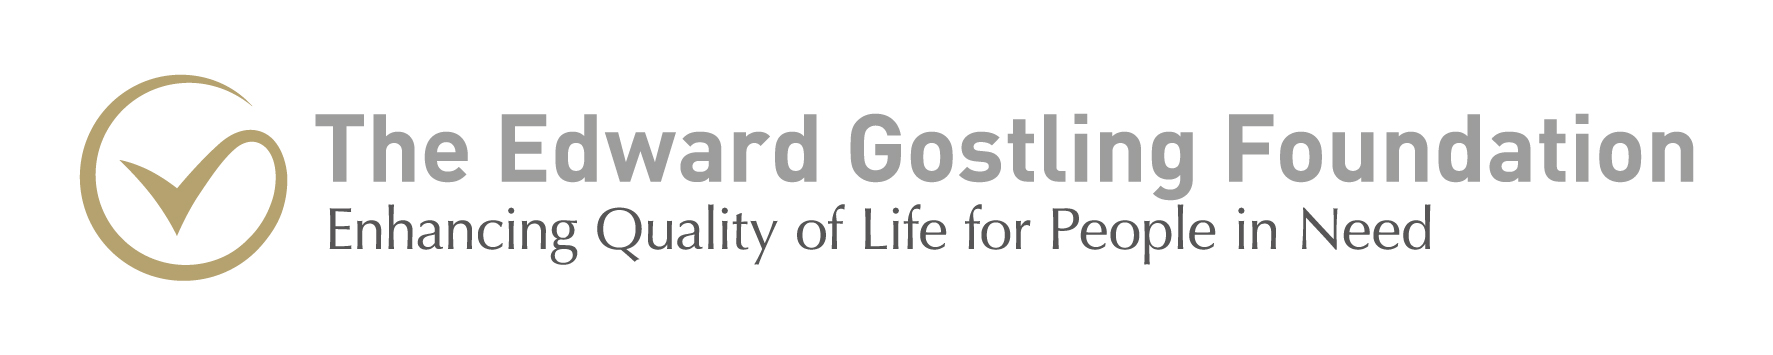 Edward Gostling Foundation logo